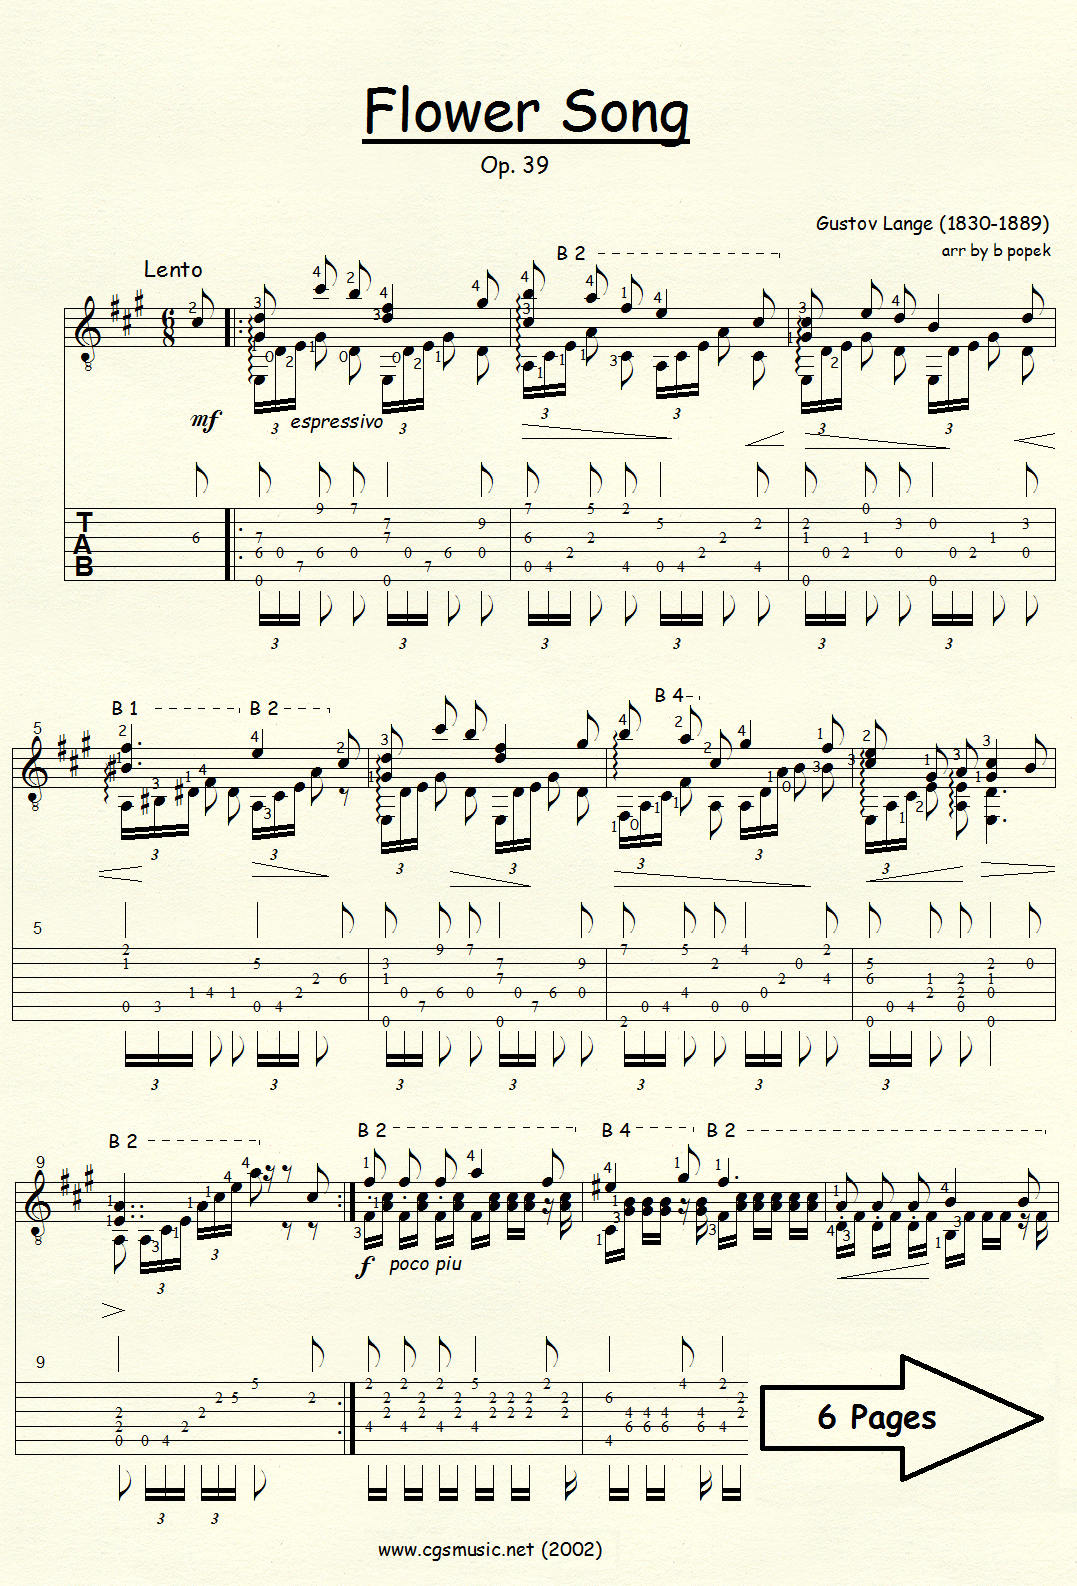 Flower Song (Lange) for Classical Guitar in Tablature